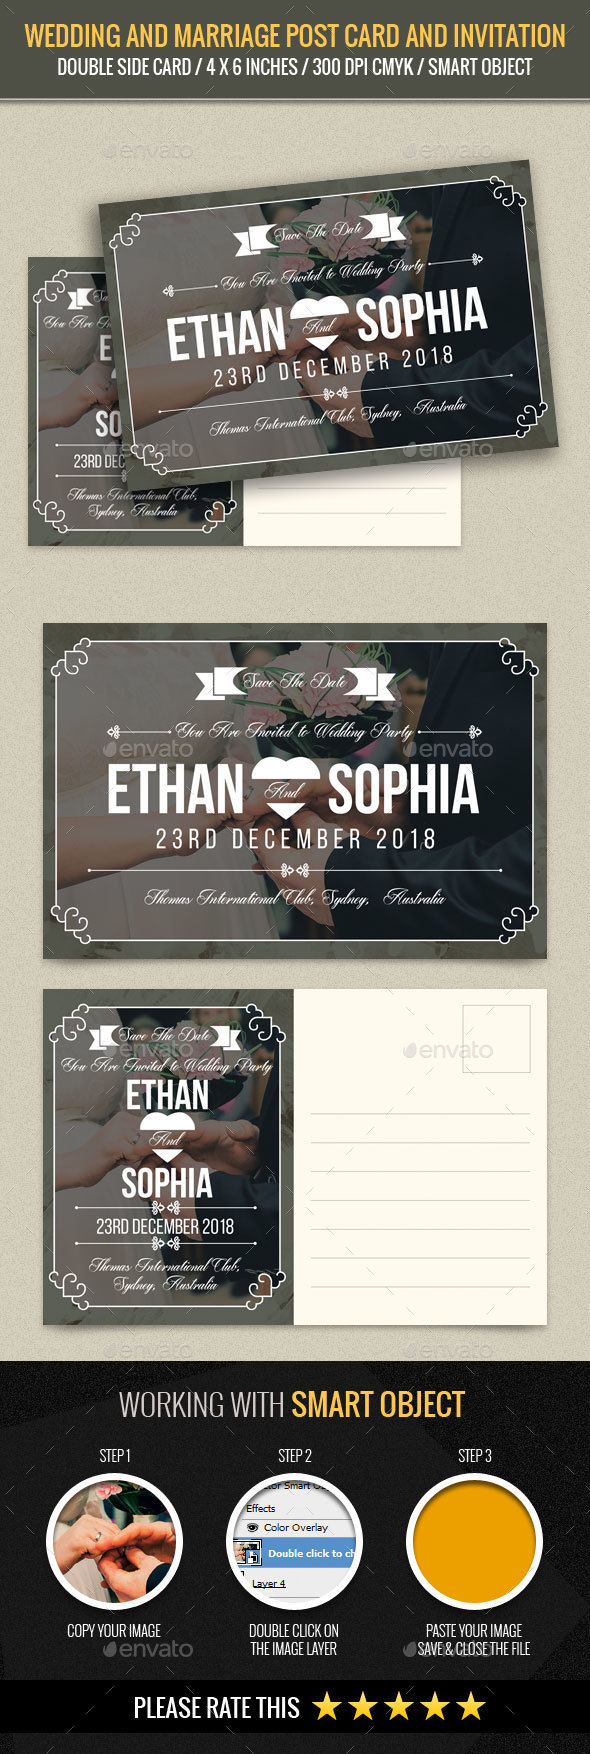 Wedding and Marriage Post Card Template - Weddings Cards & Invites